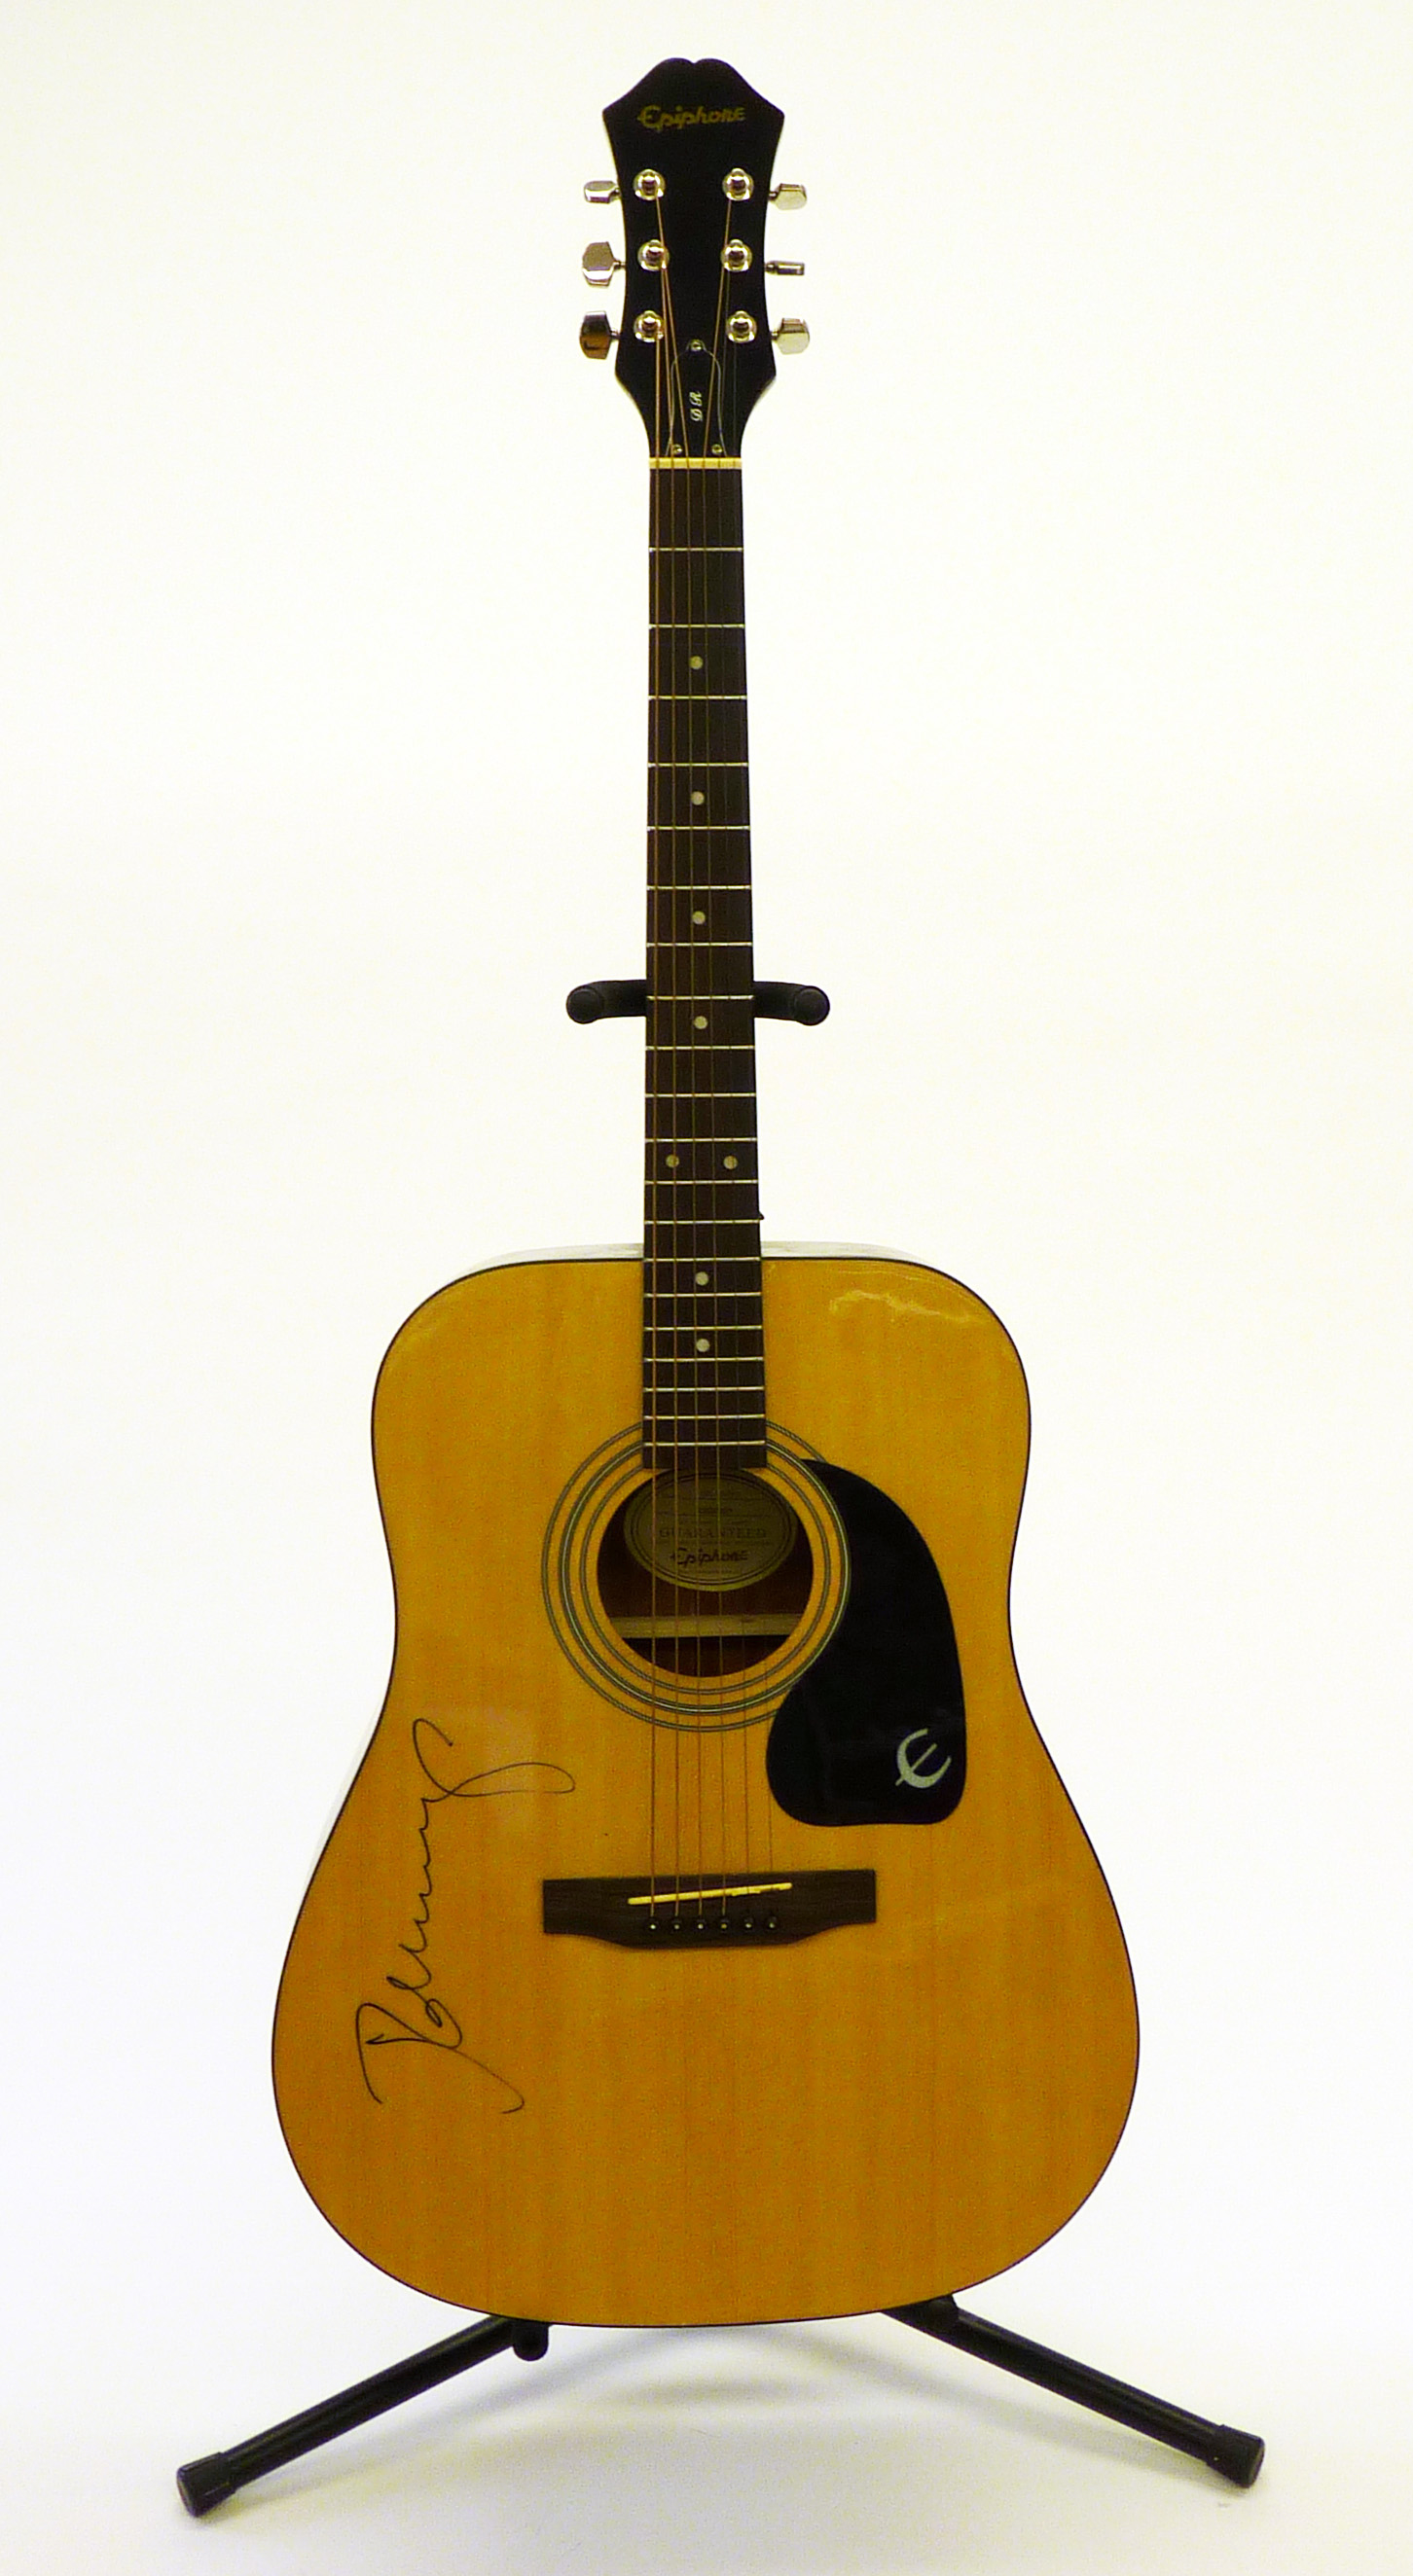 John mellencamp guitar